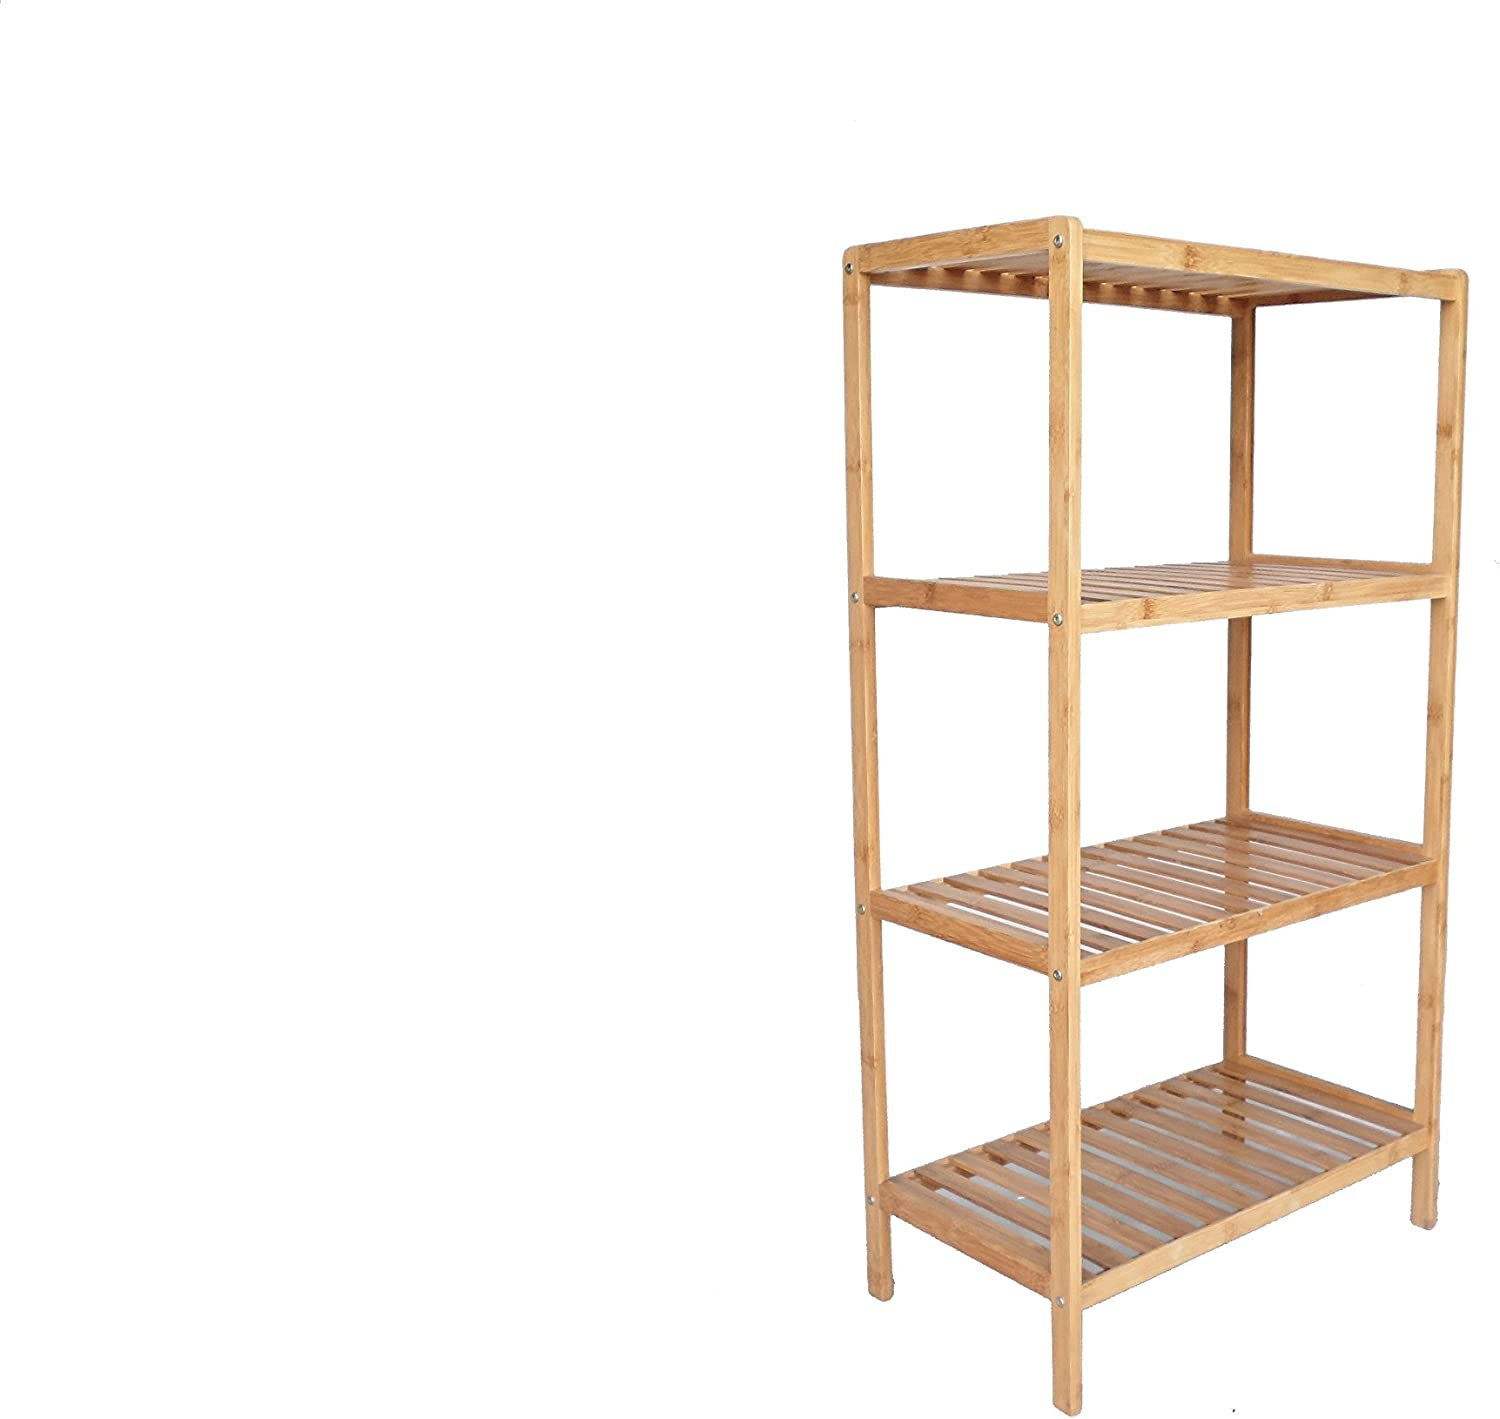 New Shipping Free Shipping Proman Products Outlet ☆ Free Shipping Bamboo 4 Tier Shelf